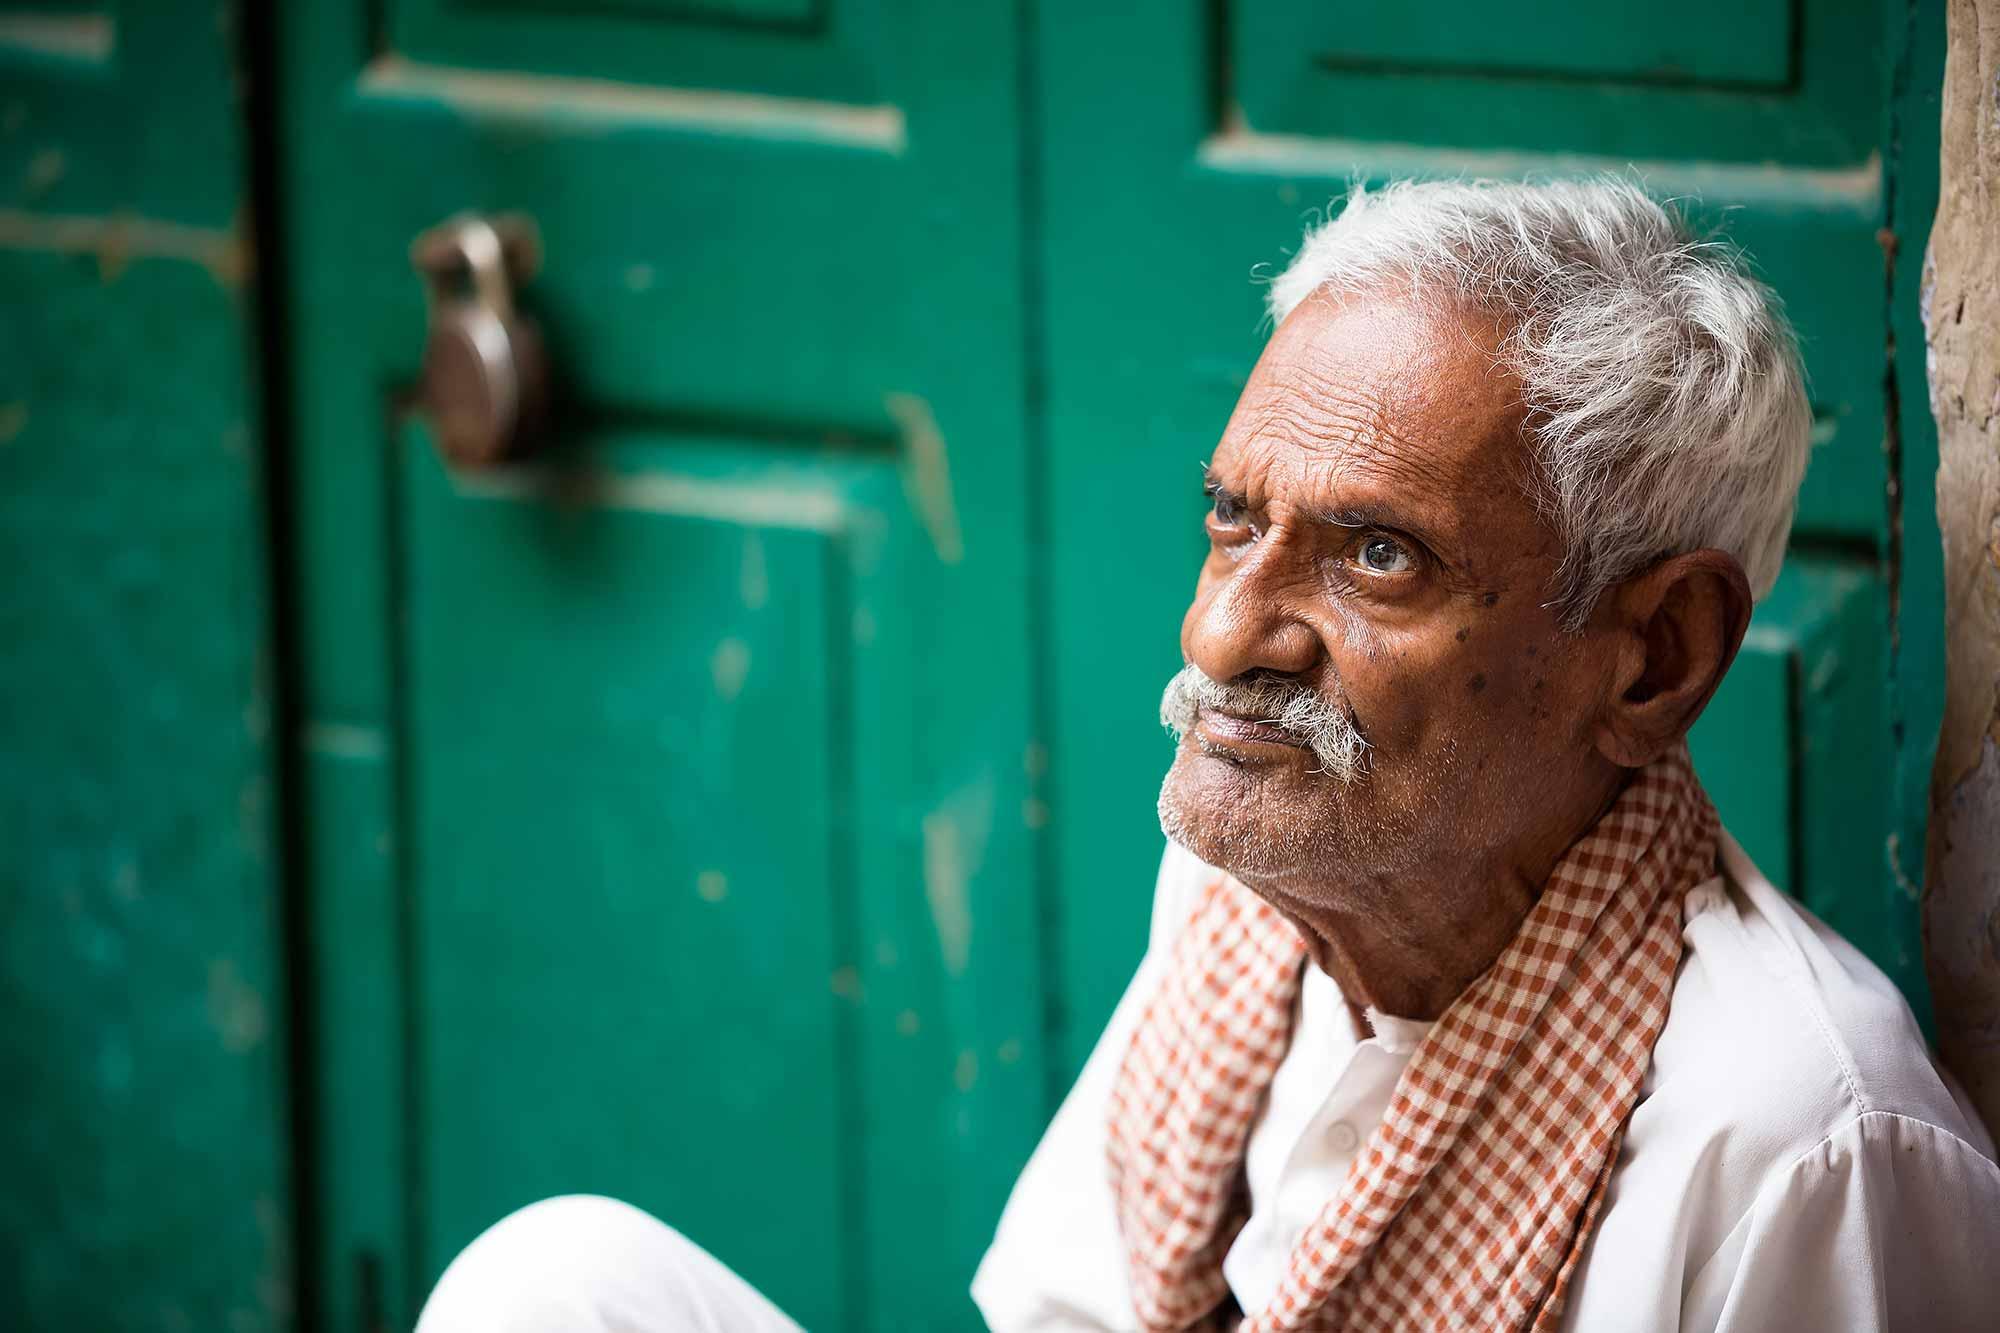 portrait-man-streets-varanasi-india